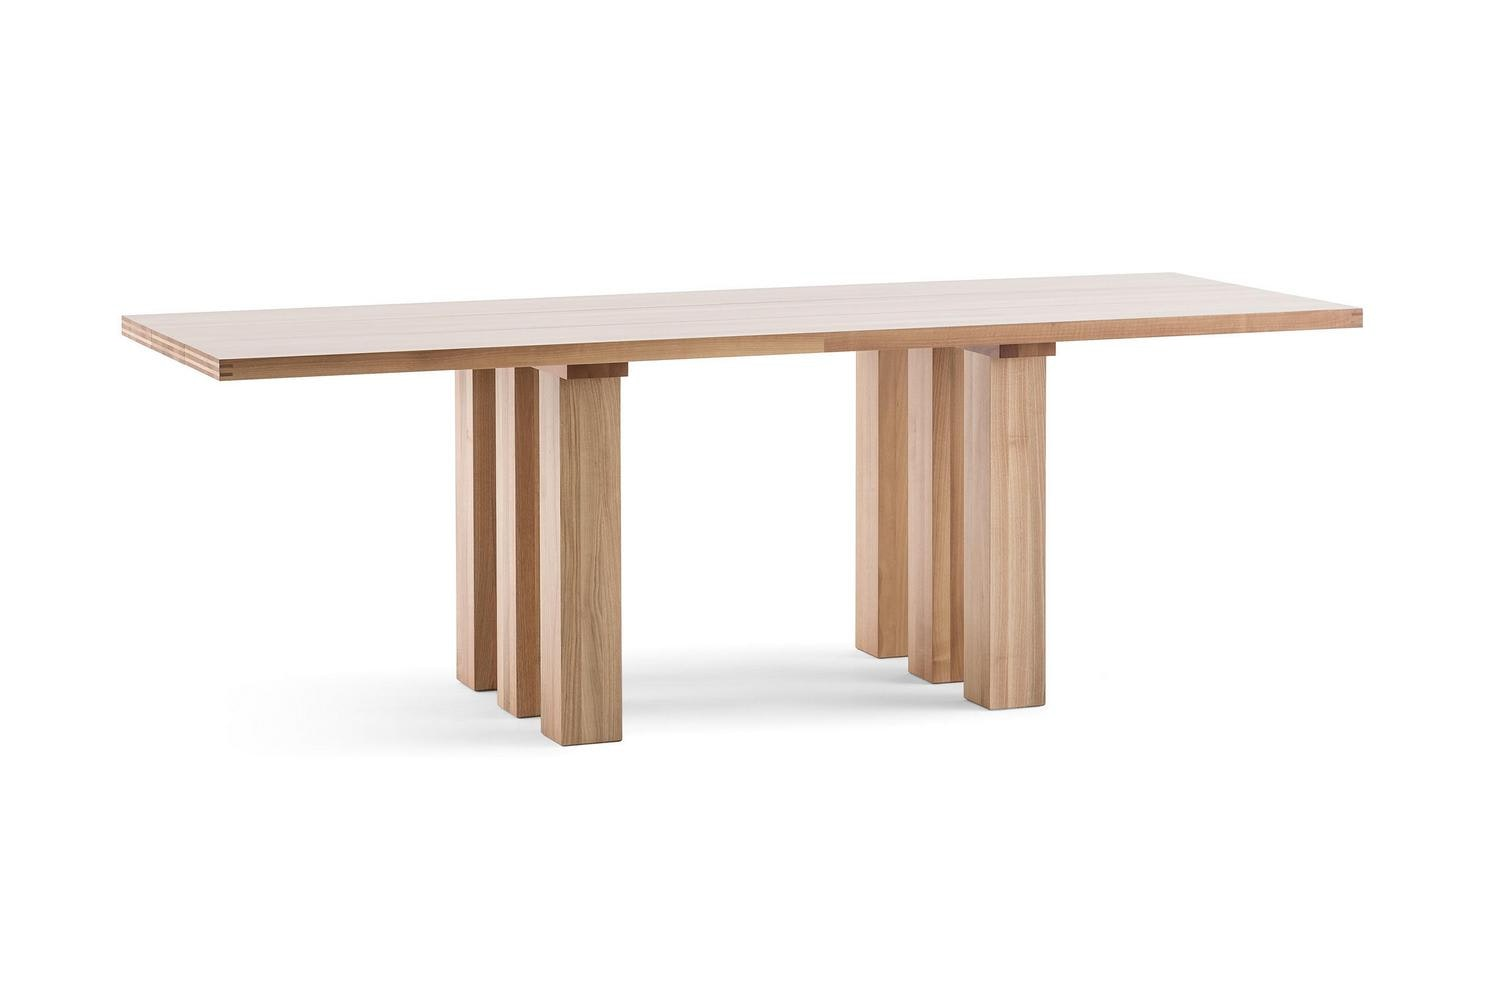 451 La Basilica Table by Mario Bellini for Cassina